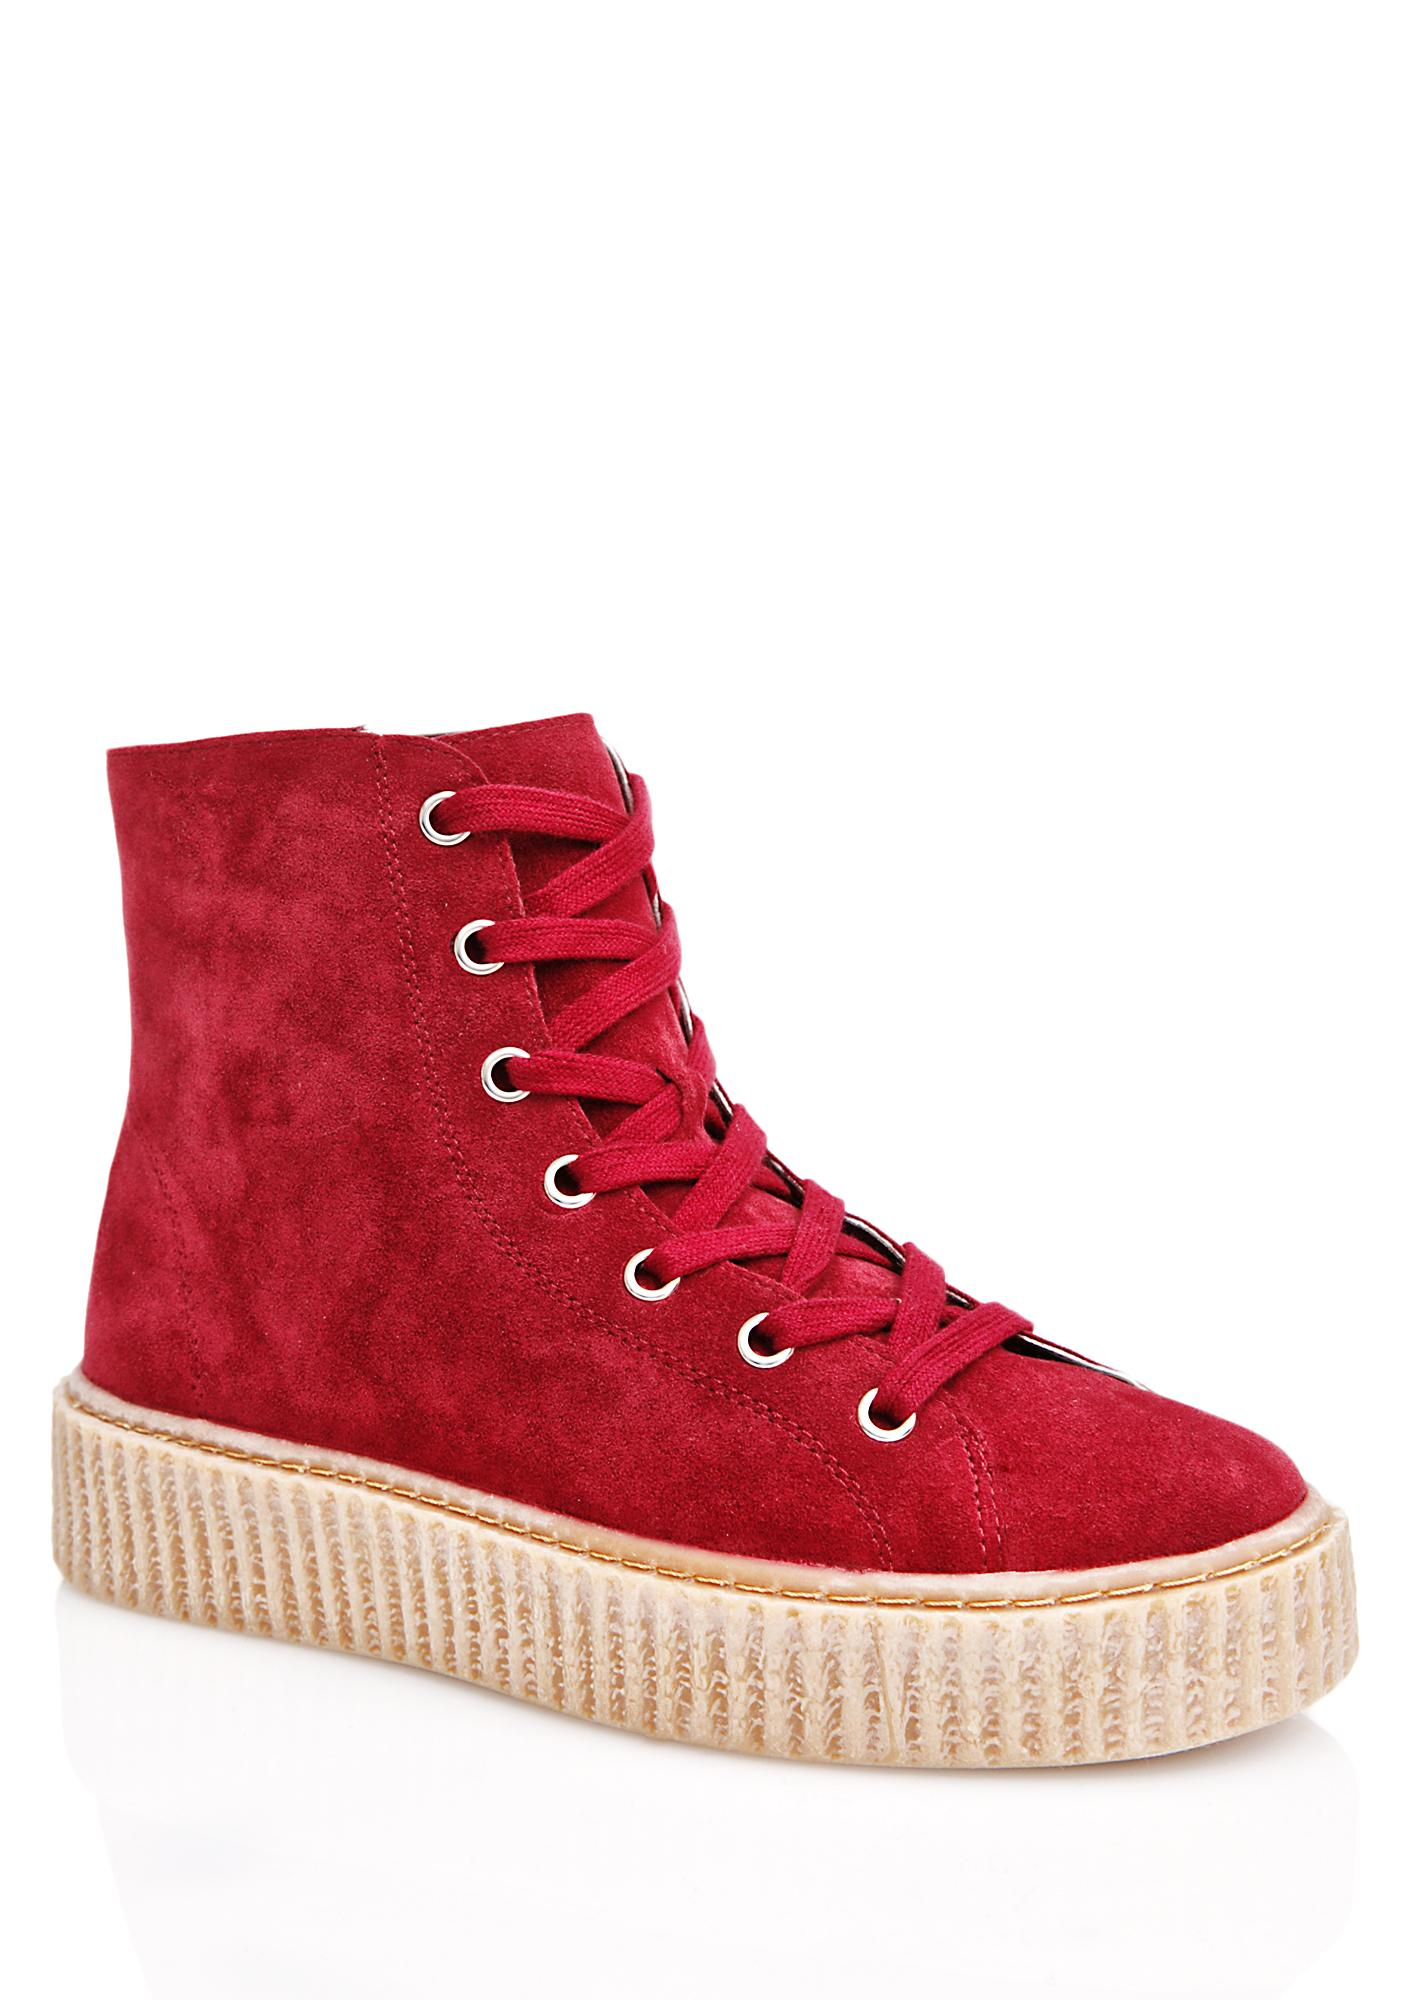 Public Desire Bordeaux Iyla Hi Top Creeper Sneakers